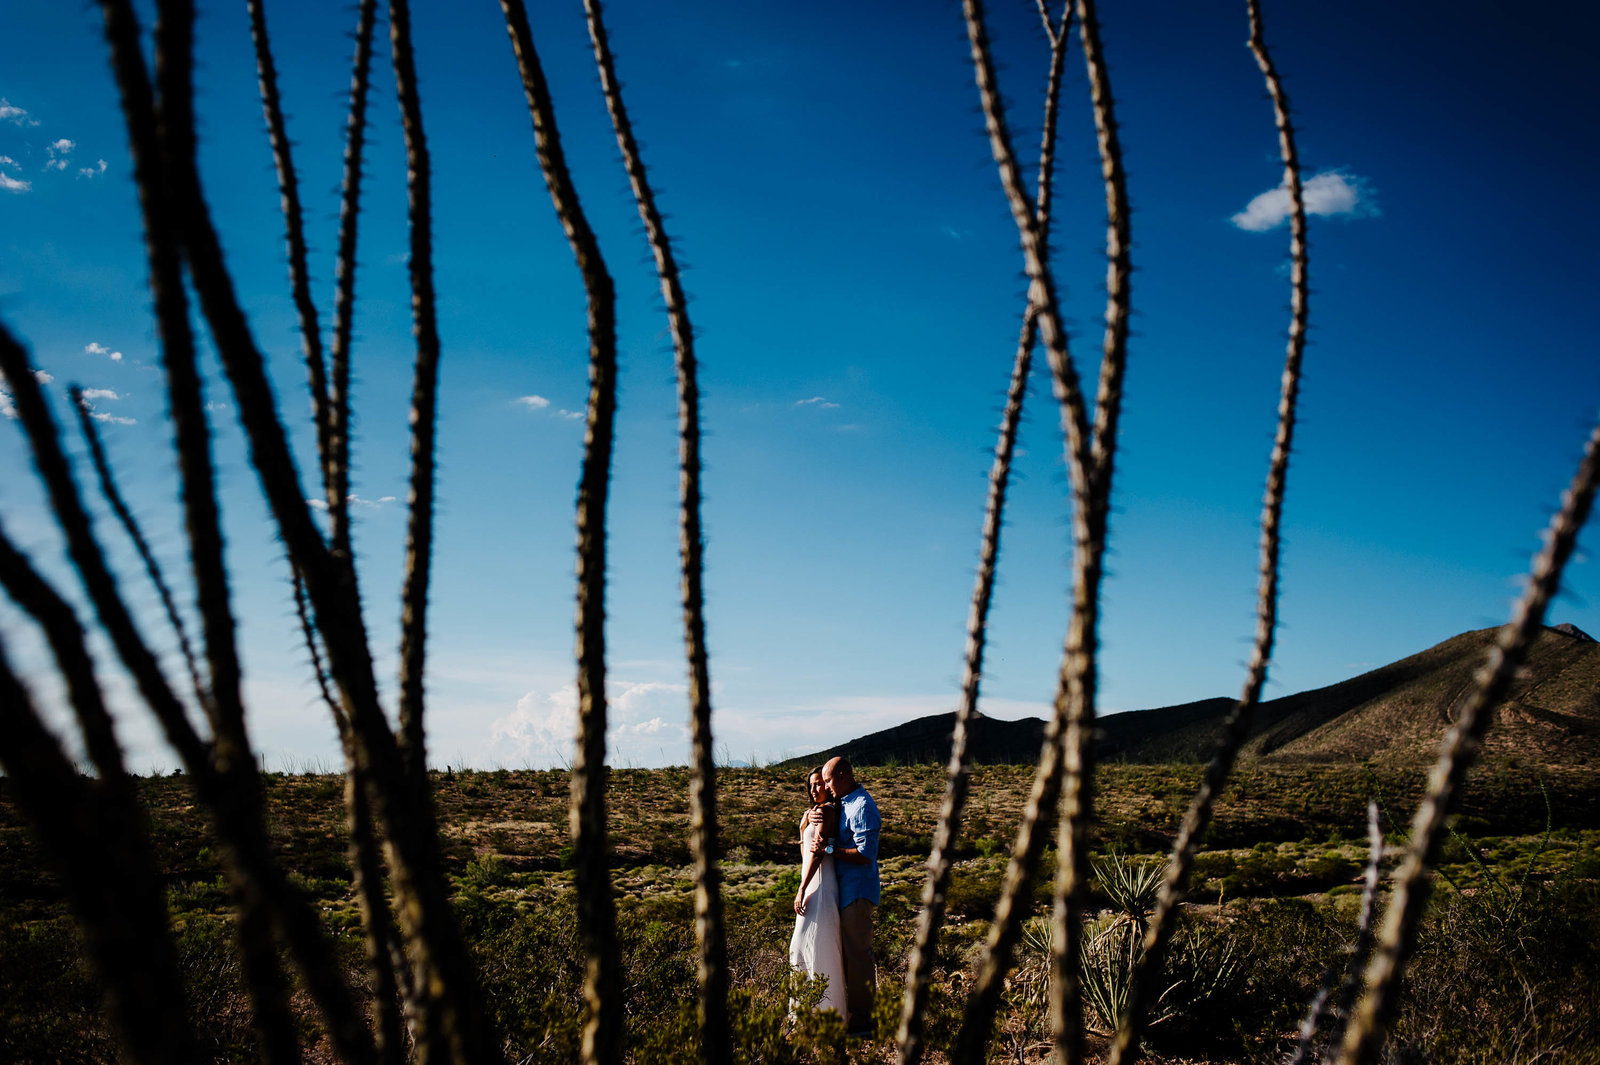 032-El-paso-wedding-photographer-DeAd_0066